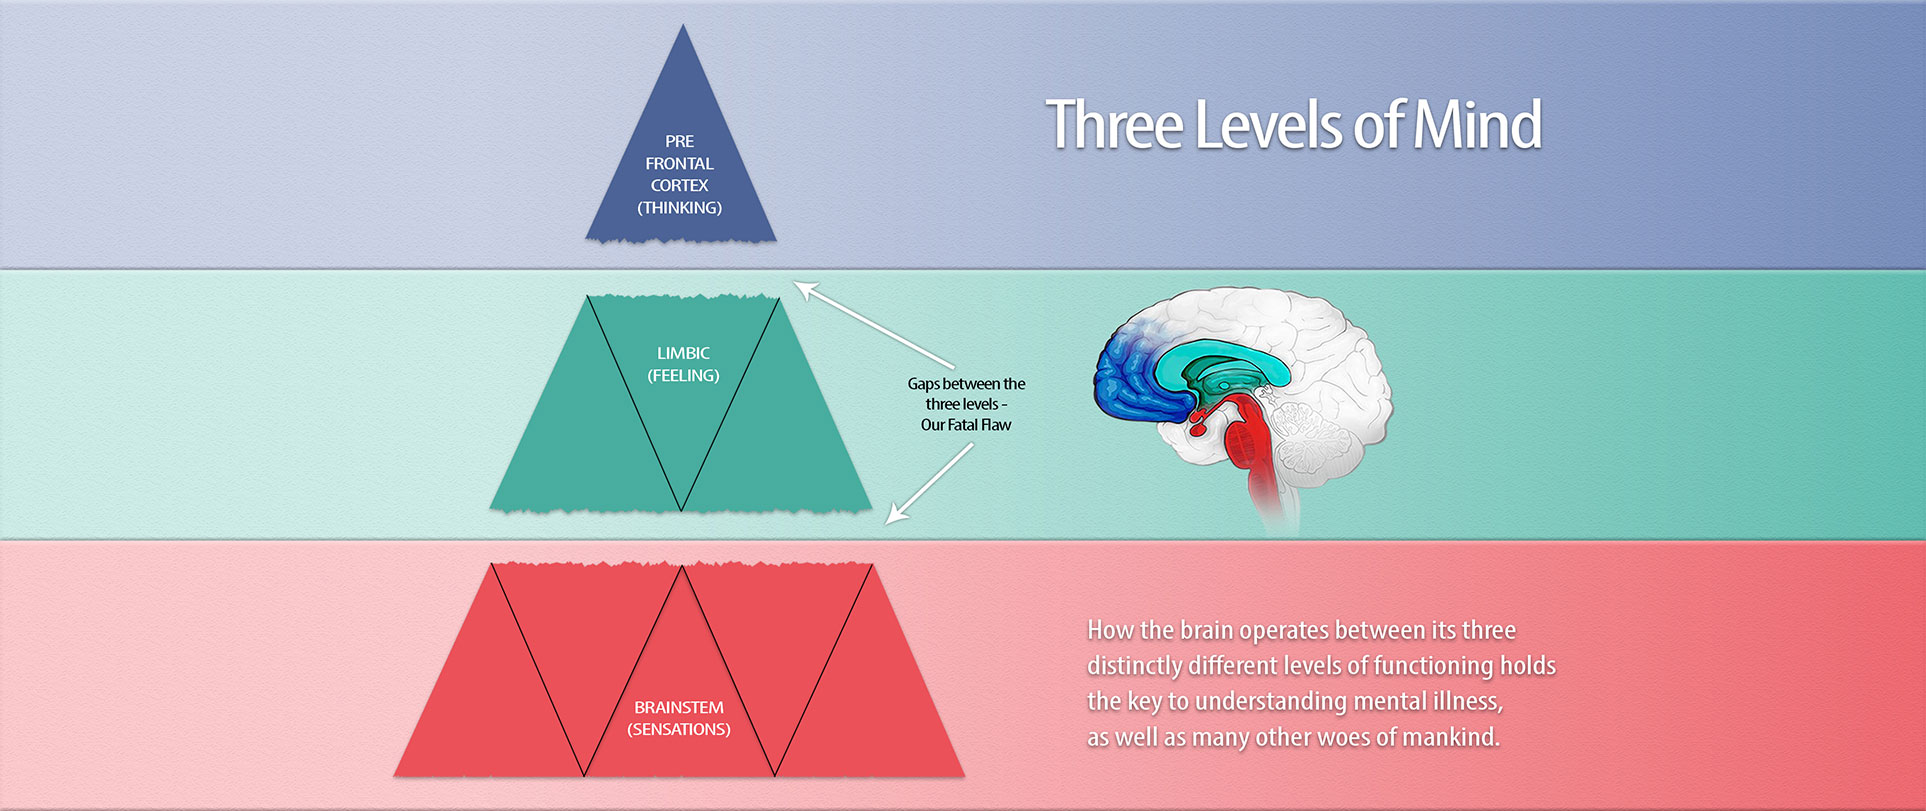 Three Levels of Mind